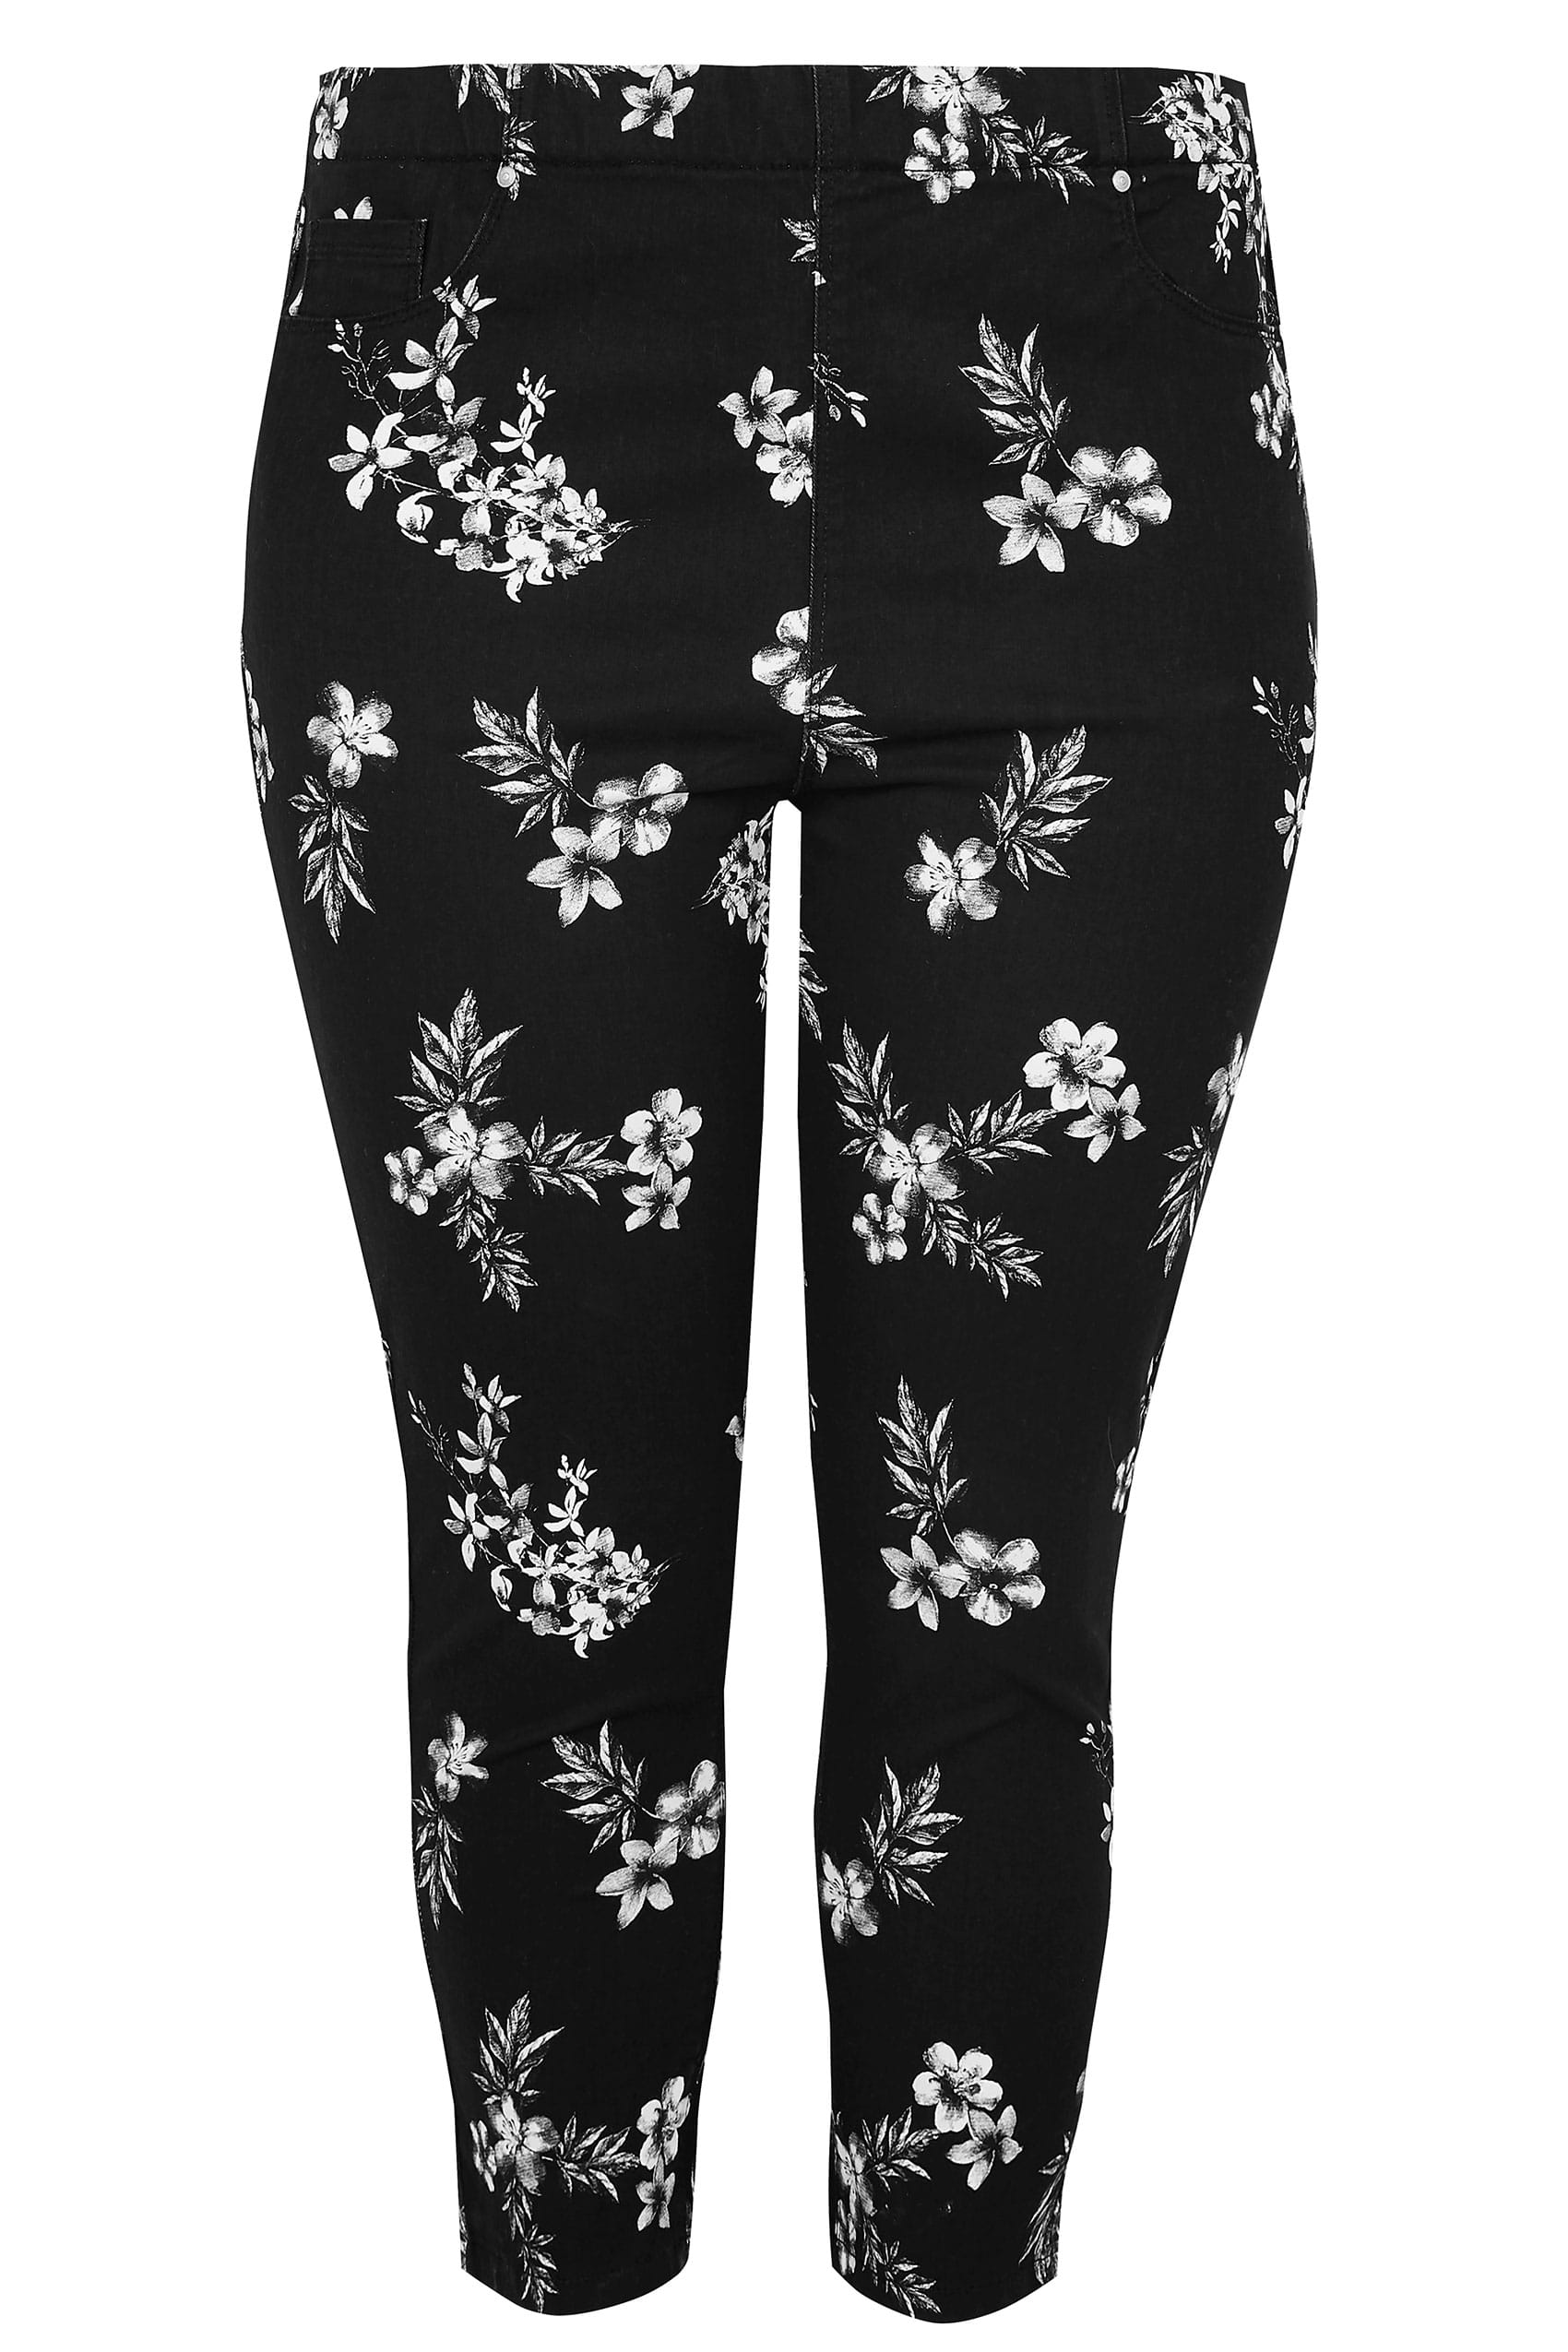 Black Amp White Floral Print Cropped Jenny Jeggings Plus